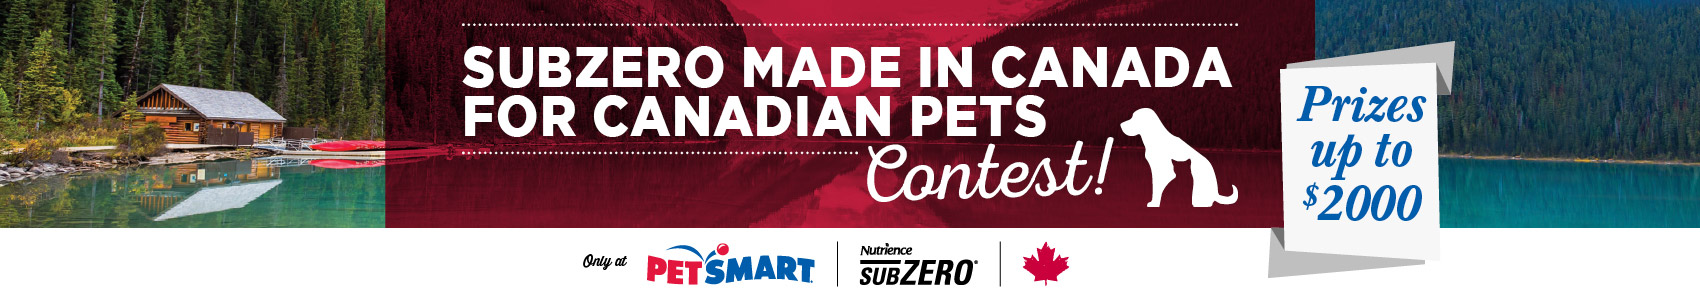 Made in Canada for Canadian pets